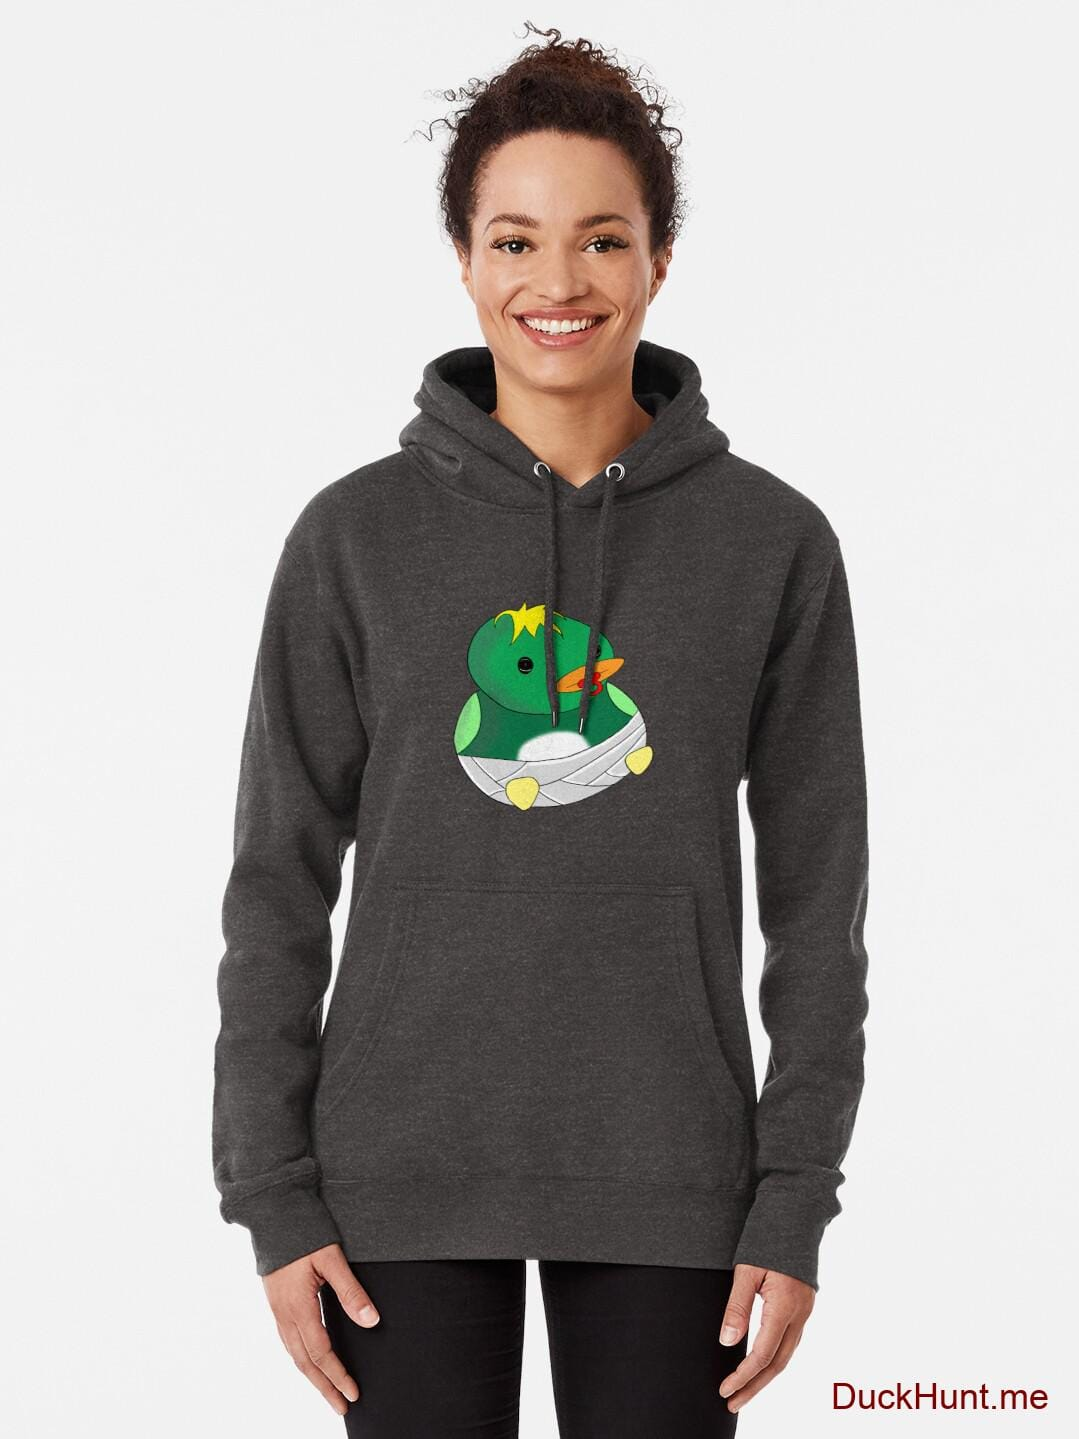 Baby duck Charcoal Heather Pullover Hoodie (Front printed) alternative image 1